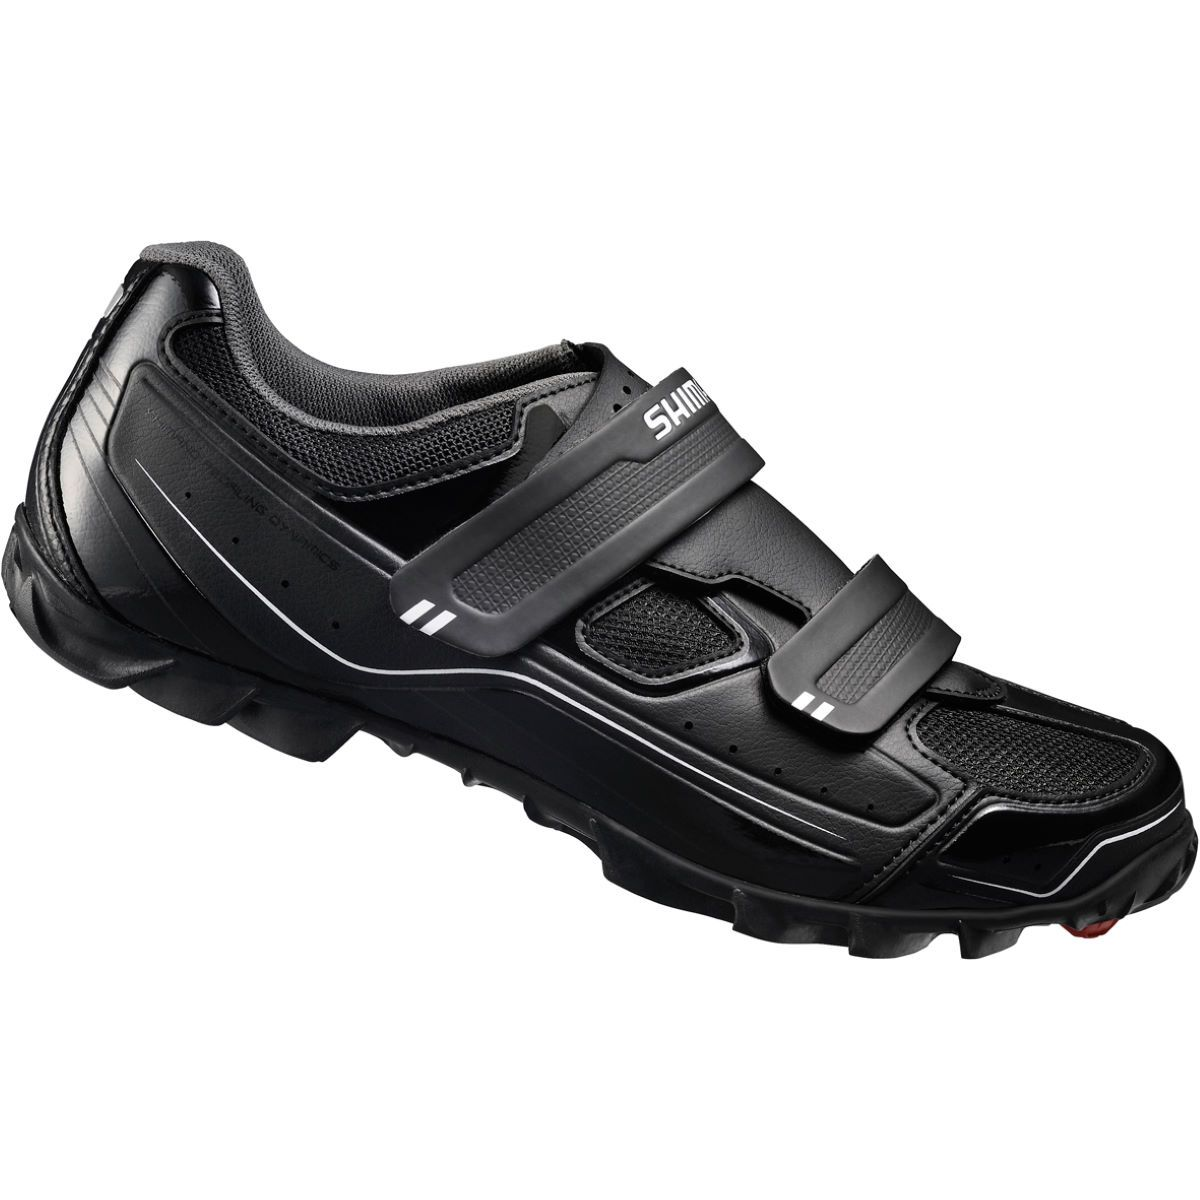 Shimano M065 Spd Mountain Bike Shoes Offroad Shoes The New M065